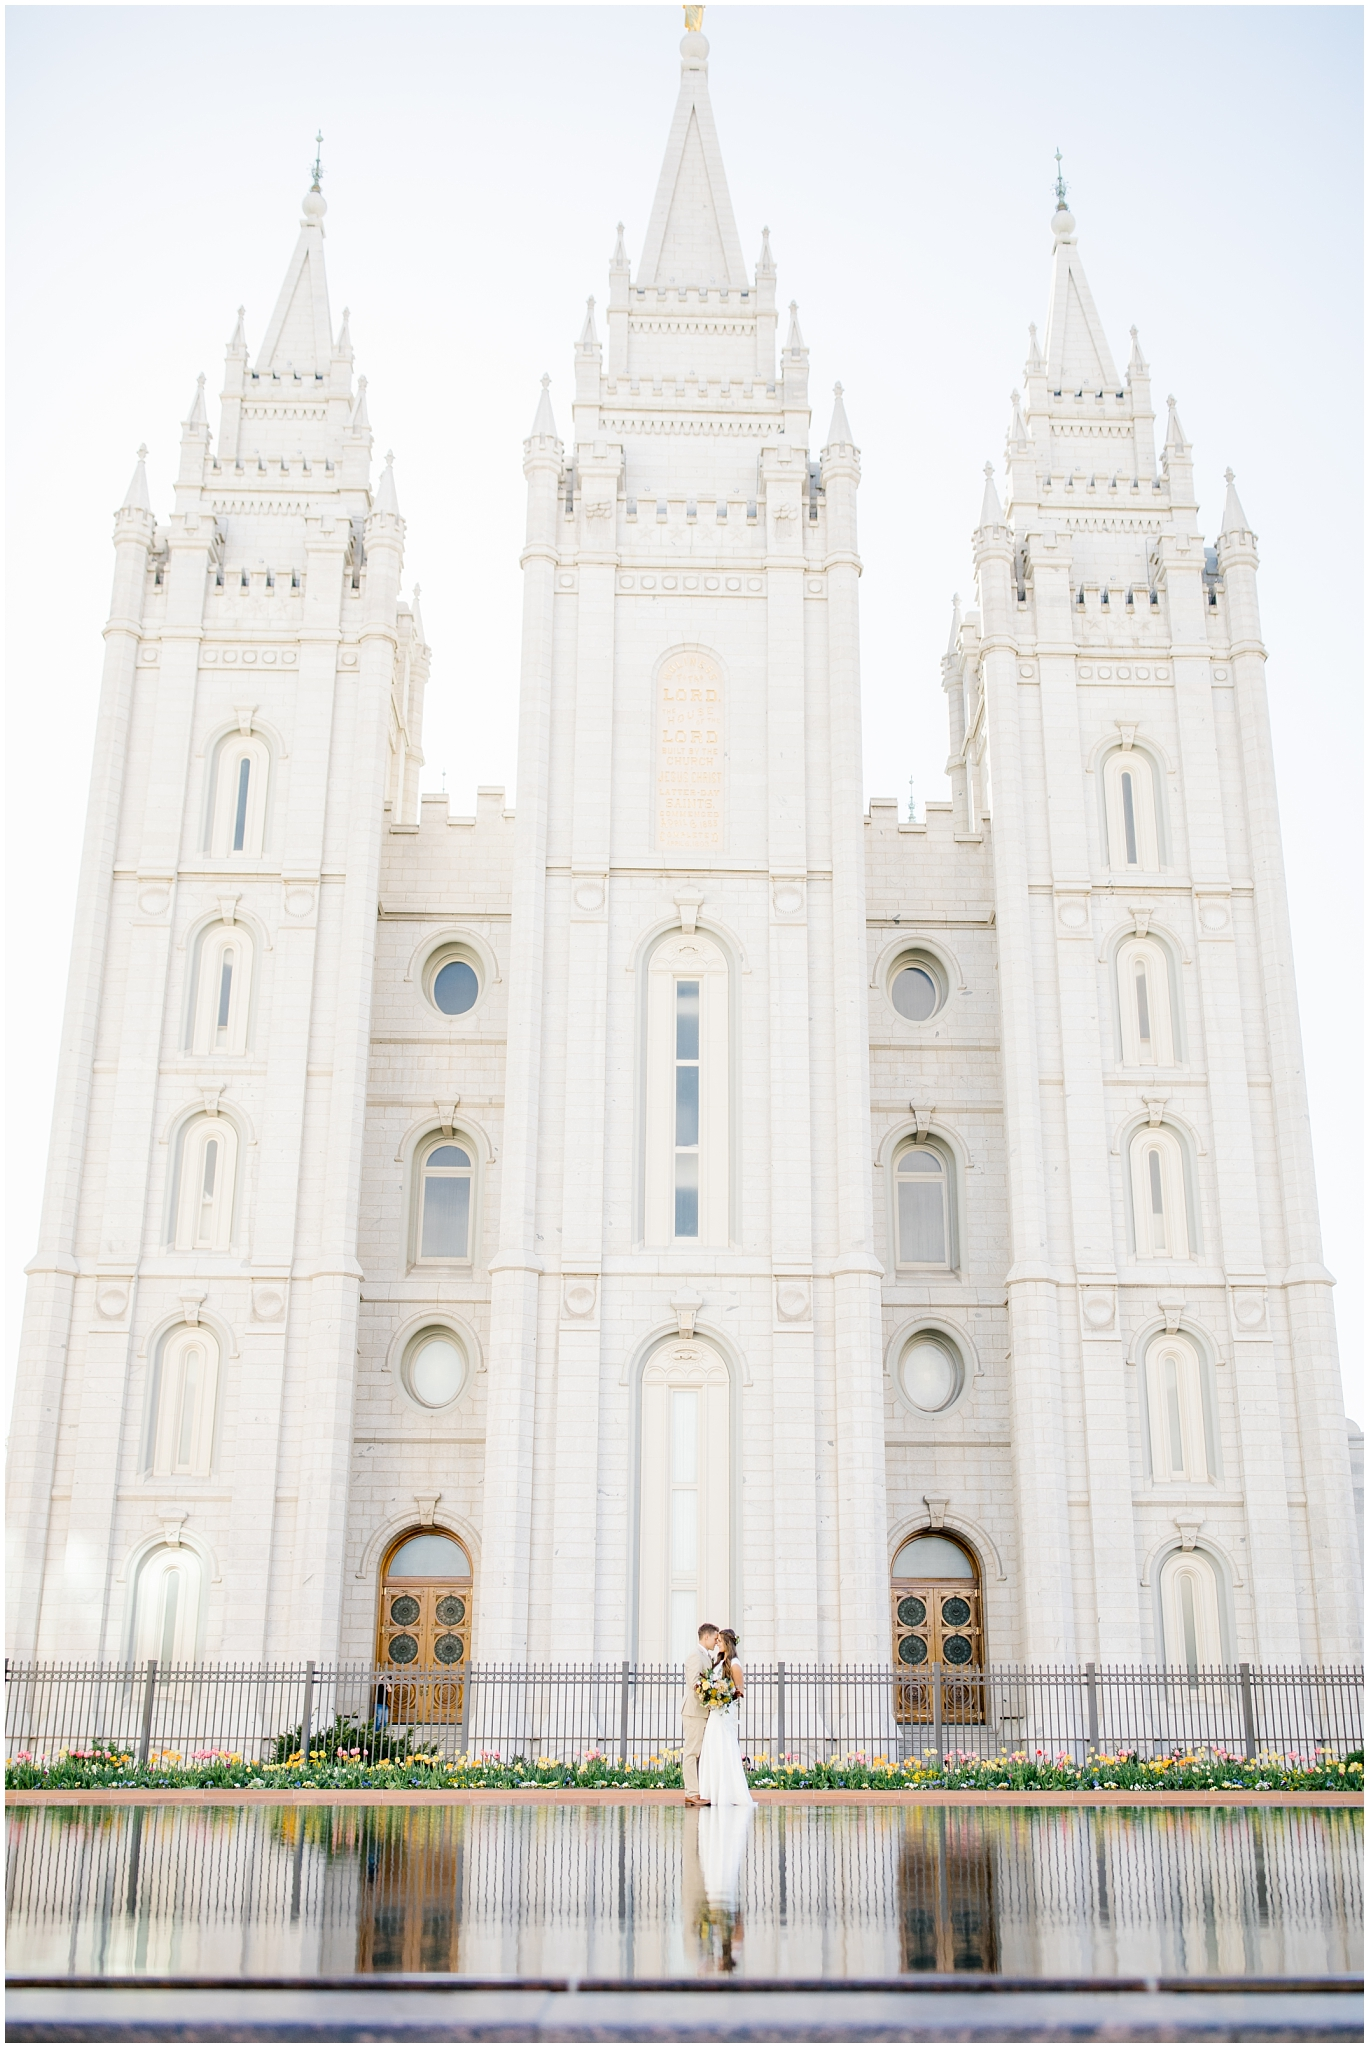 JC-Wedding-206_Lizzie-B-Imagery-Utah-Wedding-Photographer-Park-City-Salt-Lake-City-Temple-Joseph-Smith-Memorial-Building-Empire-Room.jpg